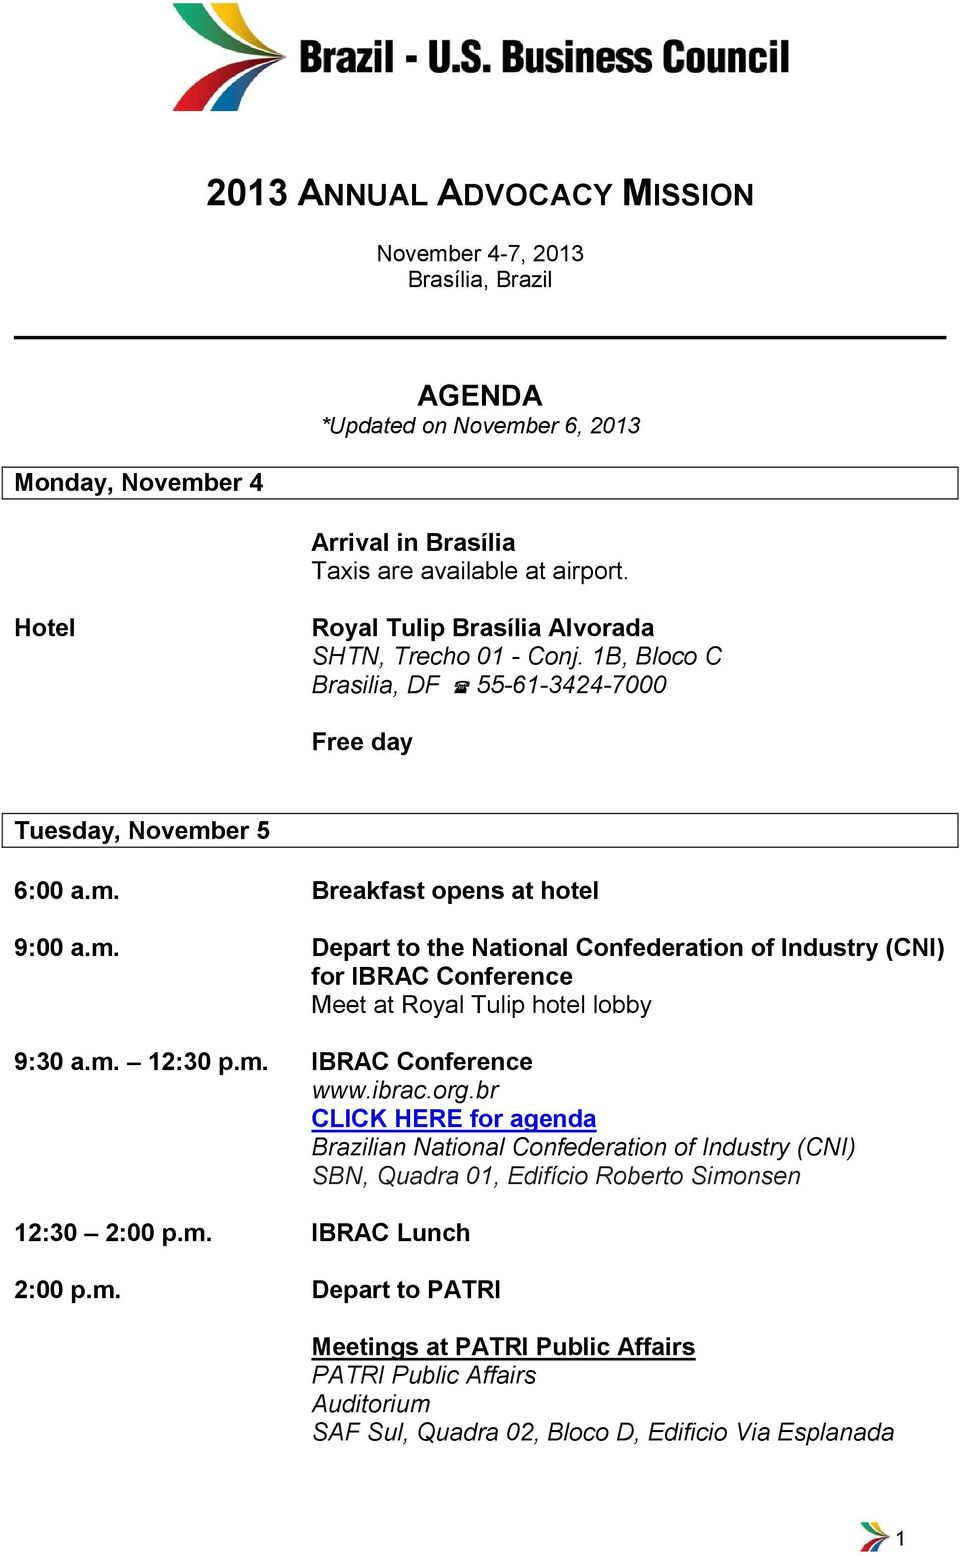 er 5 9:00 a.m. Depart to the National Confederation of Industry (CNI) for IBRAC Conference Meet at Royal Tulip hotel lobby 9:30 a.m. 12:30 p.m. IBRAC Conference www.ibrac.org.